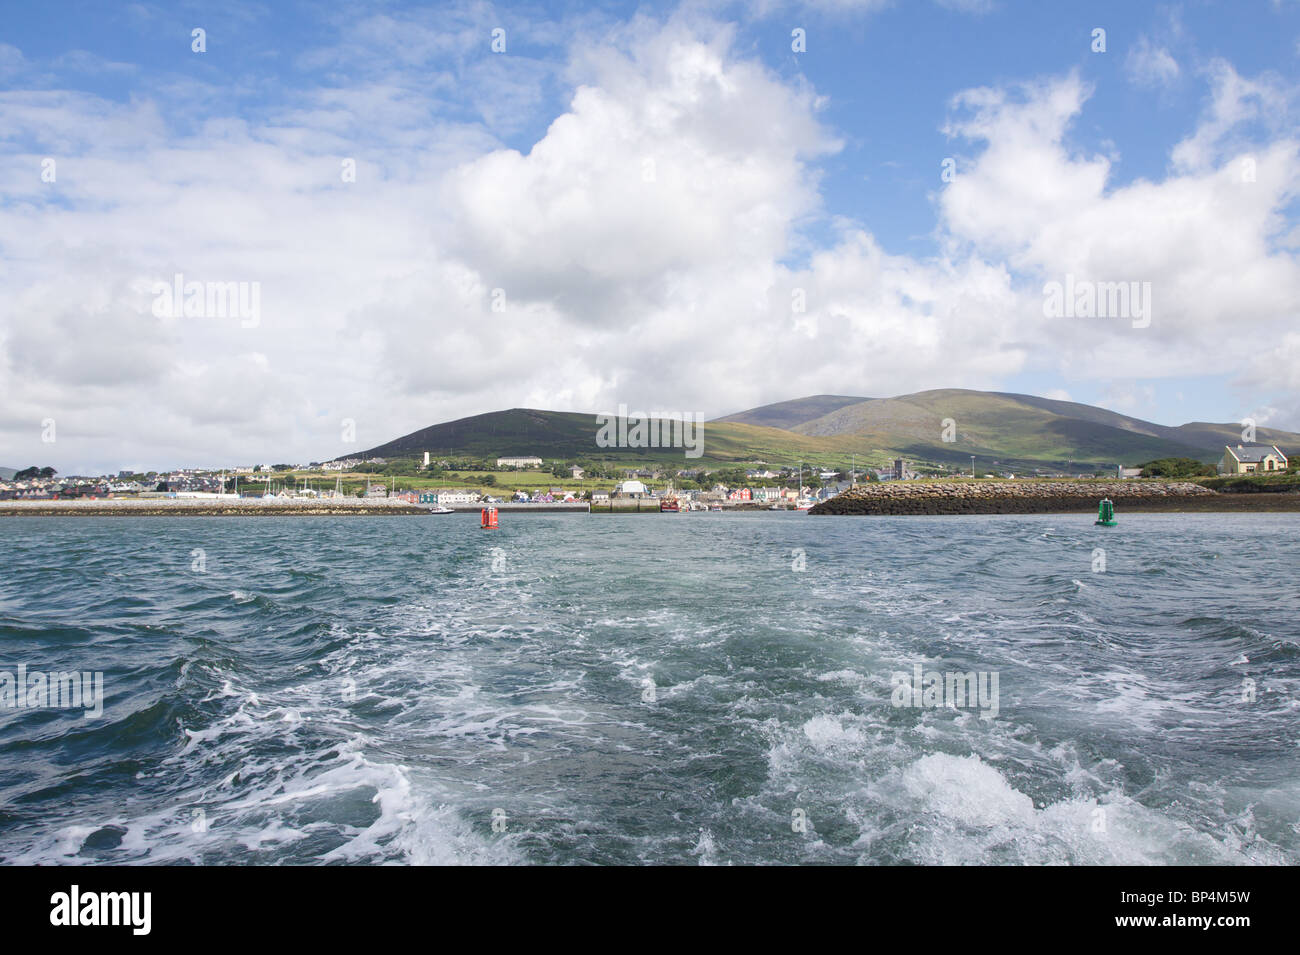 Waves from a boat leaving Dingle harbour, County Kerry in Republic of Ireland - Stock Image